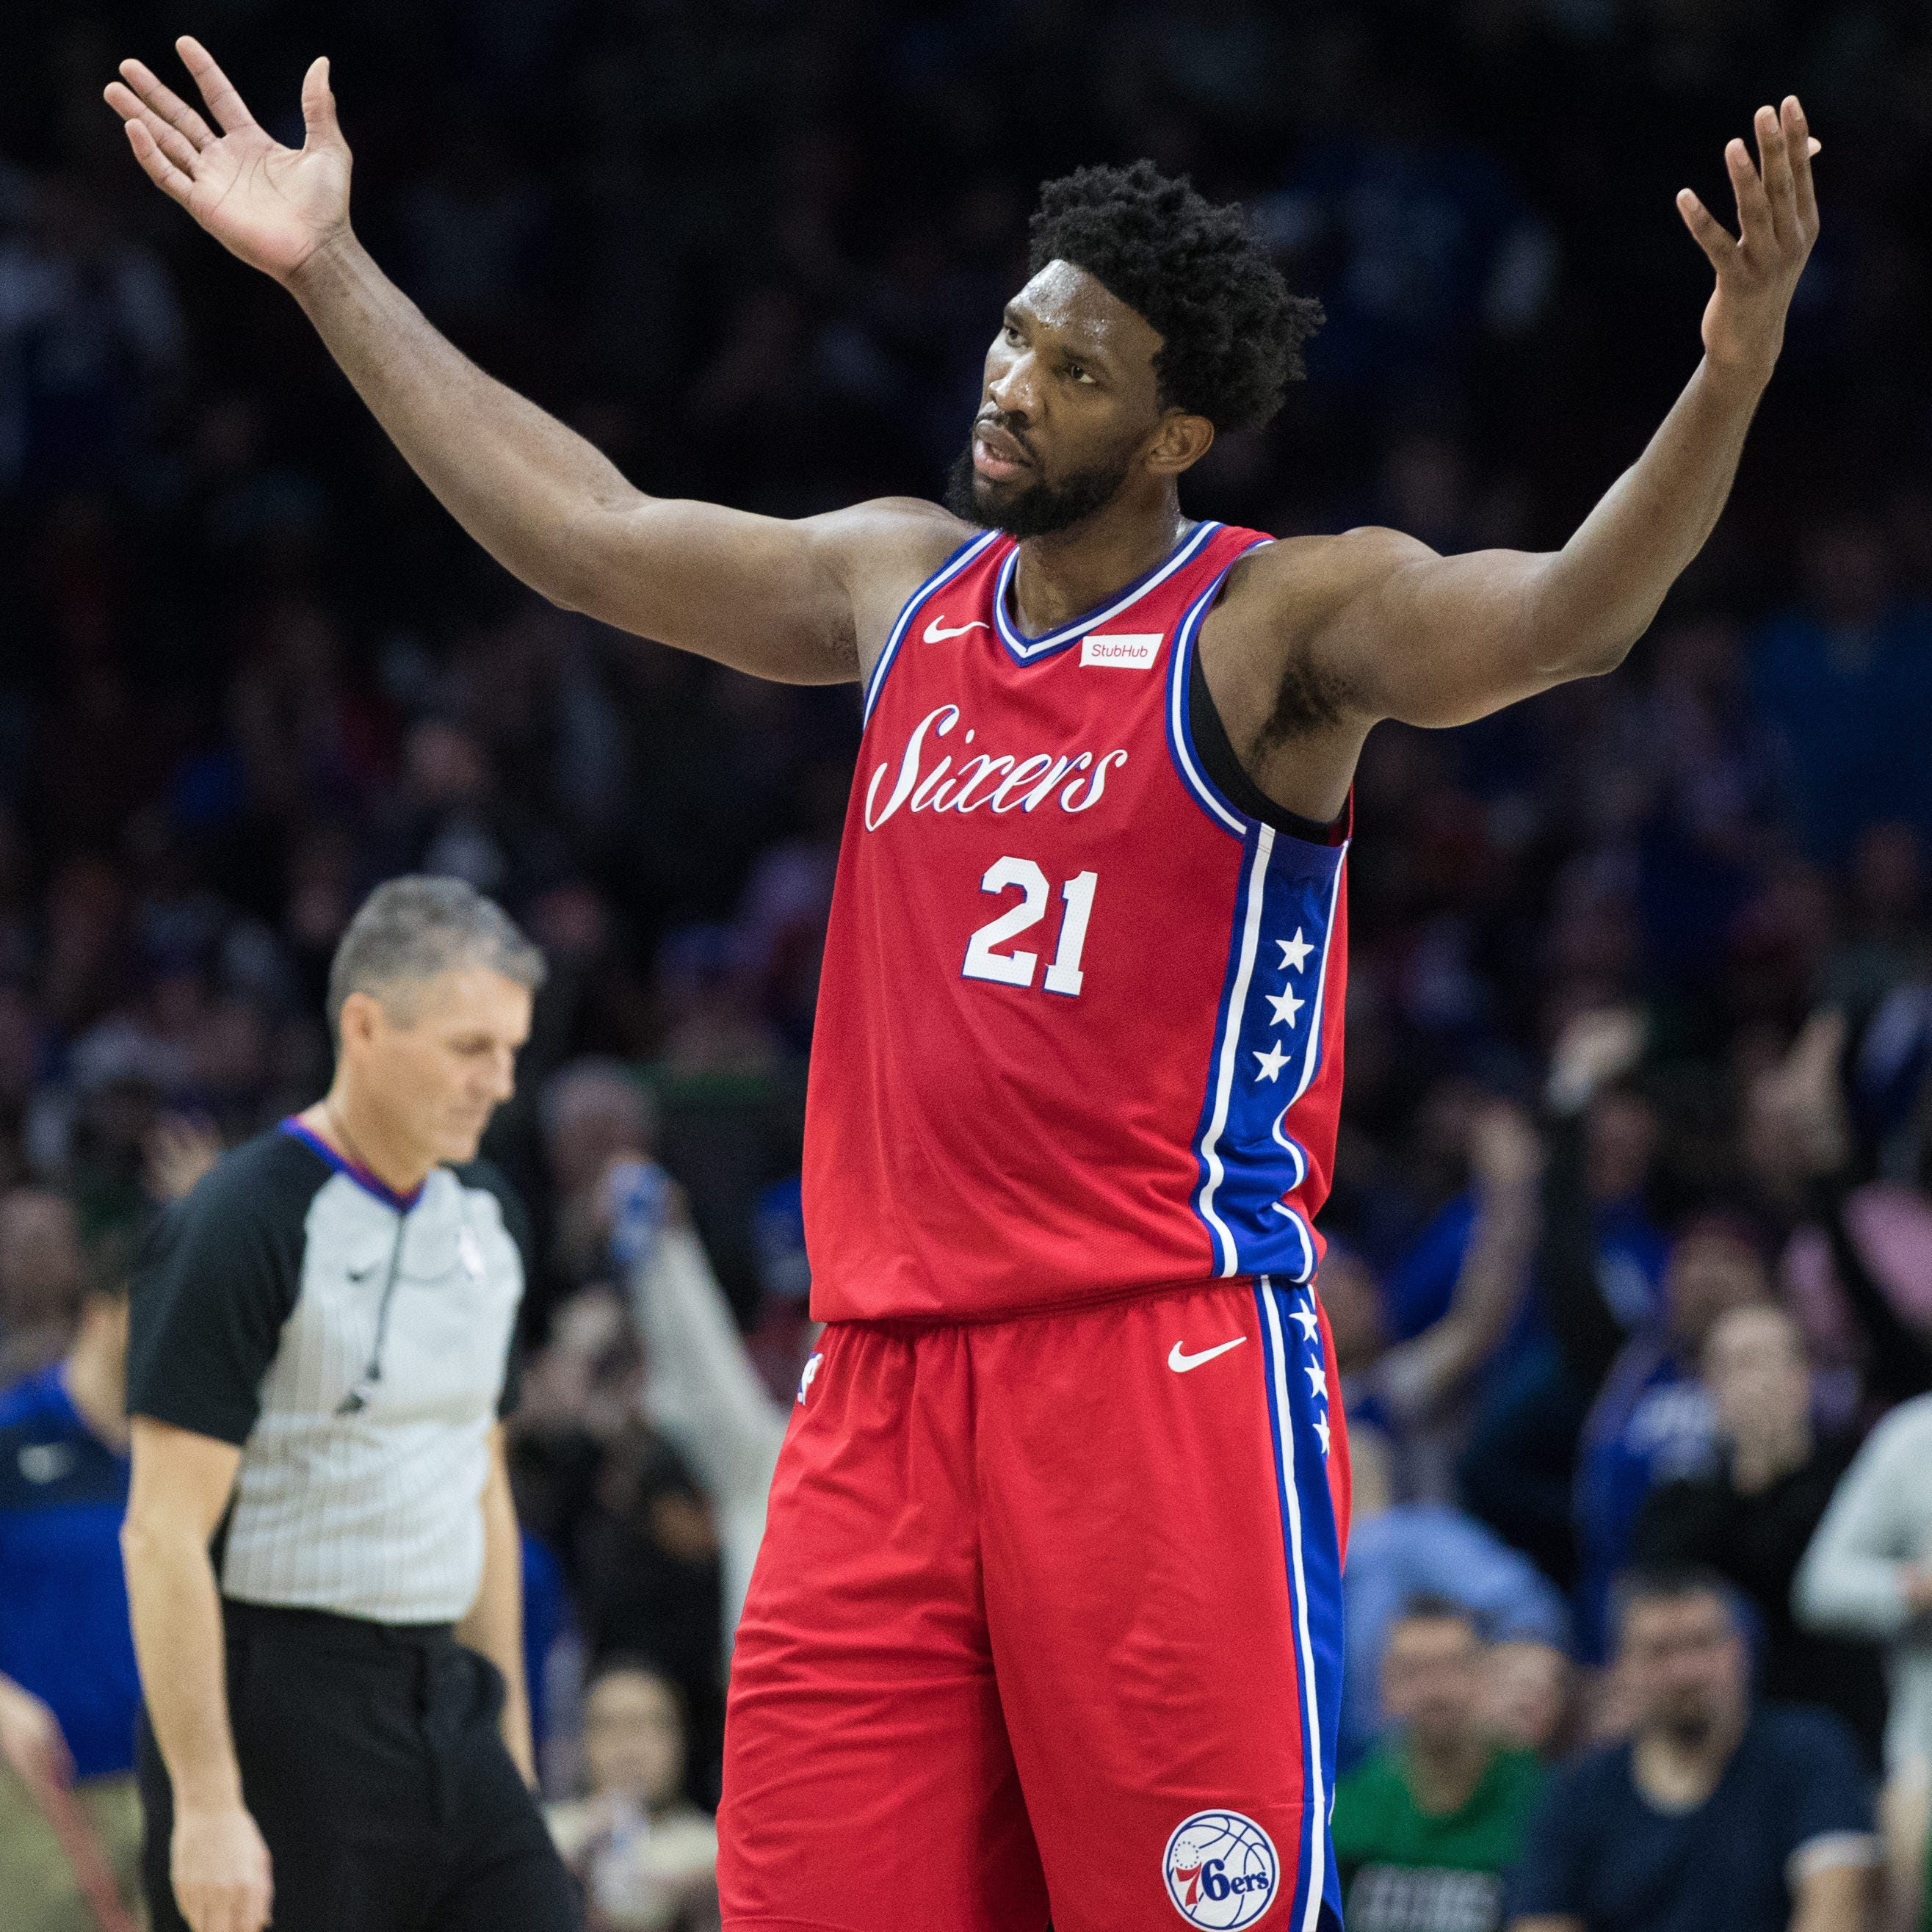 Joel Embiid after 76ers' loss to Celtics: 'Referees (expletive) sucked'